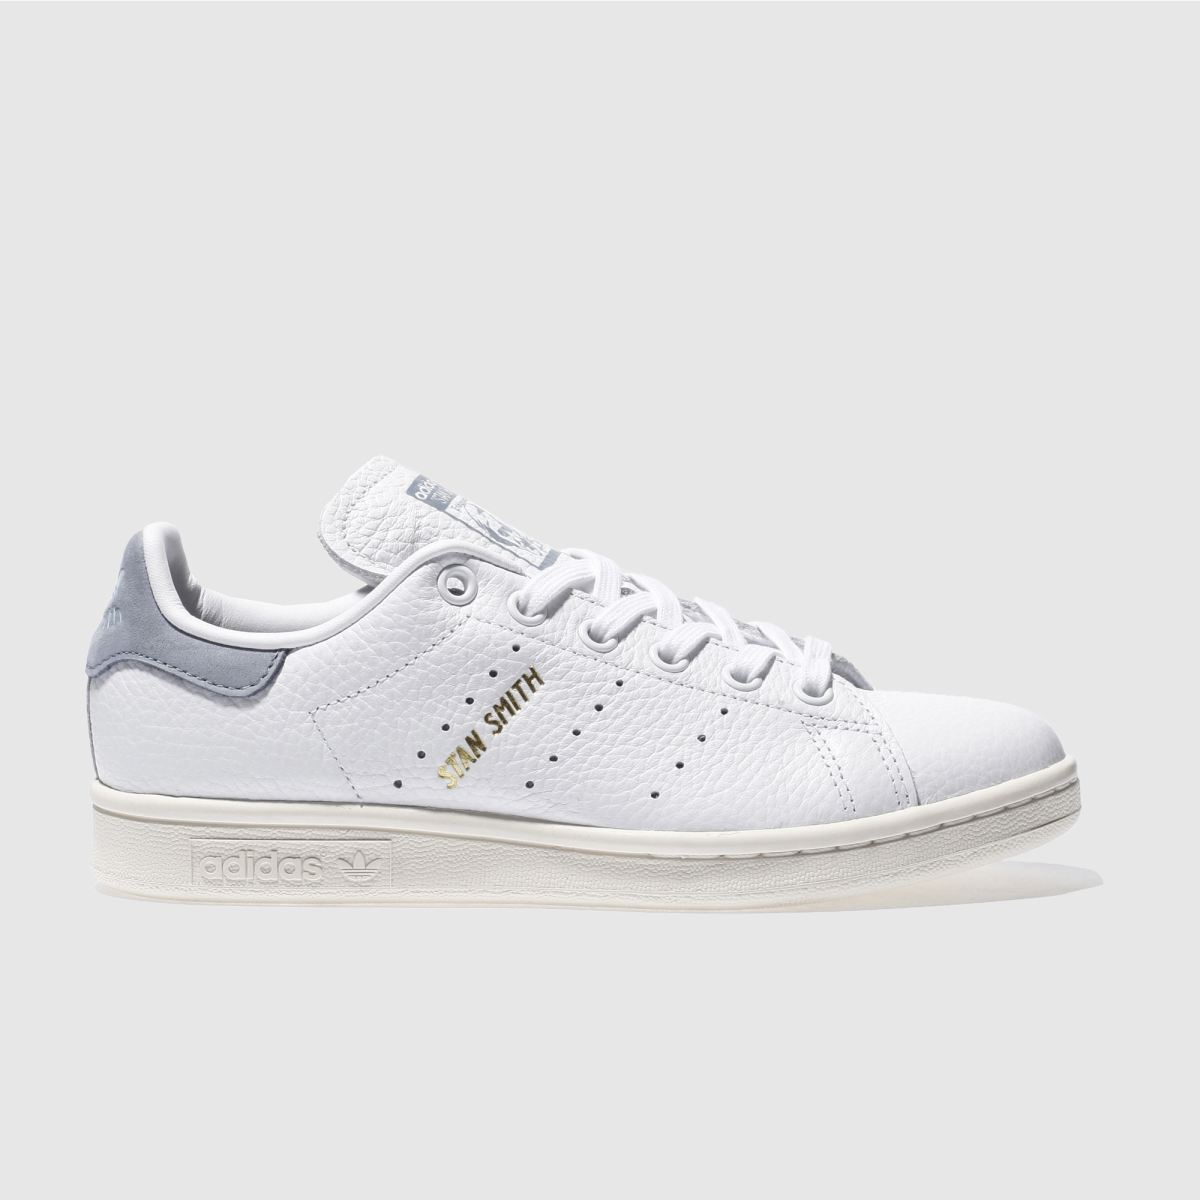 adidas white & blue stan smith trainers